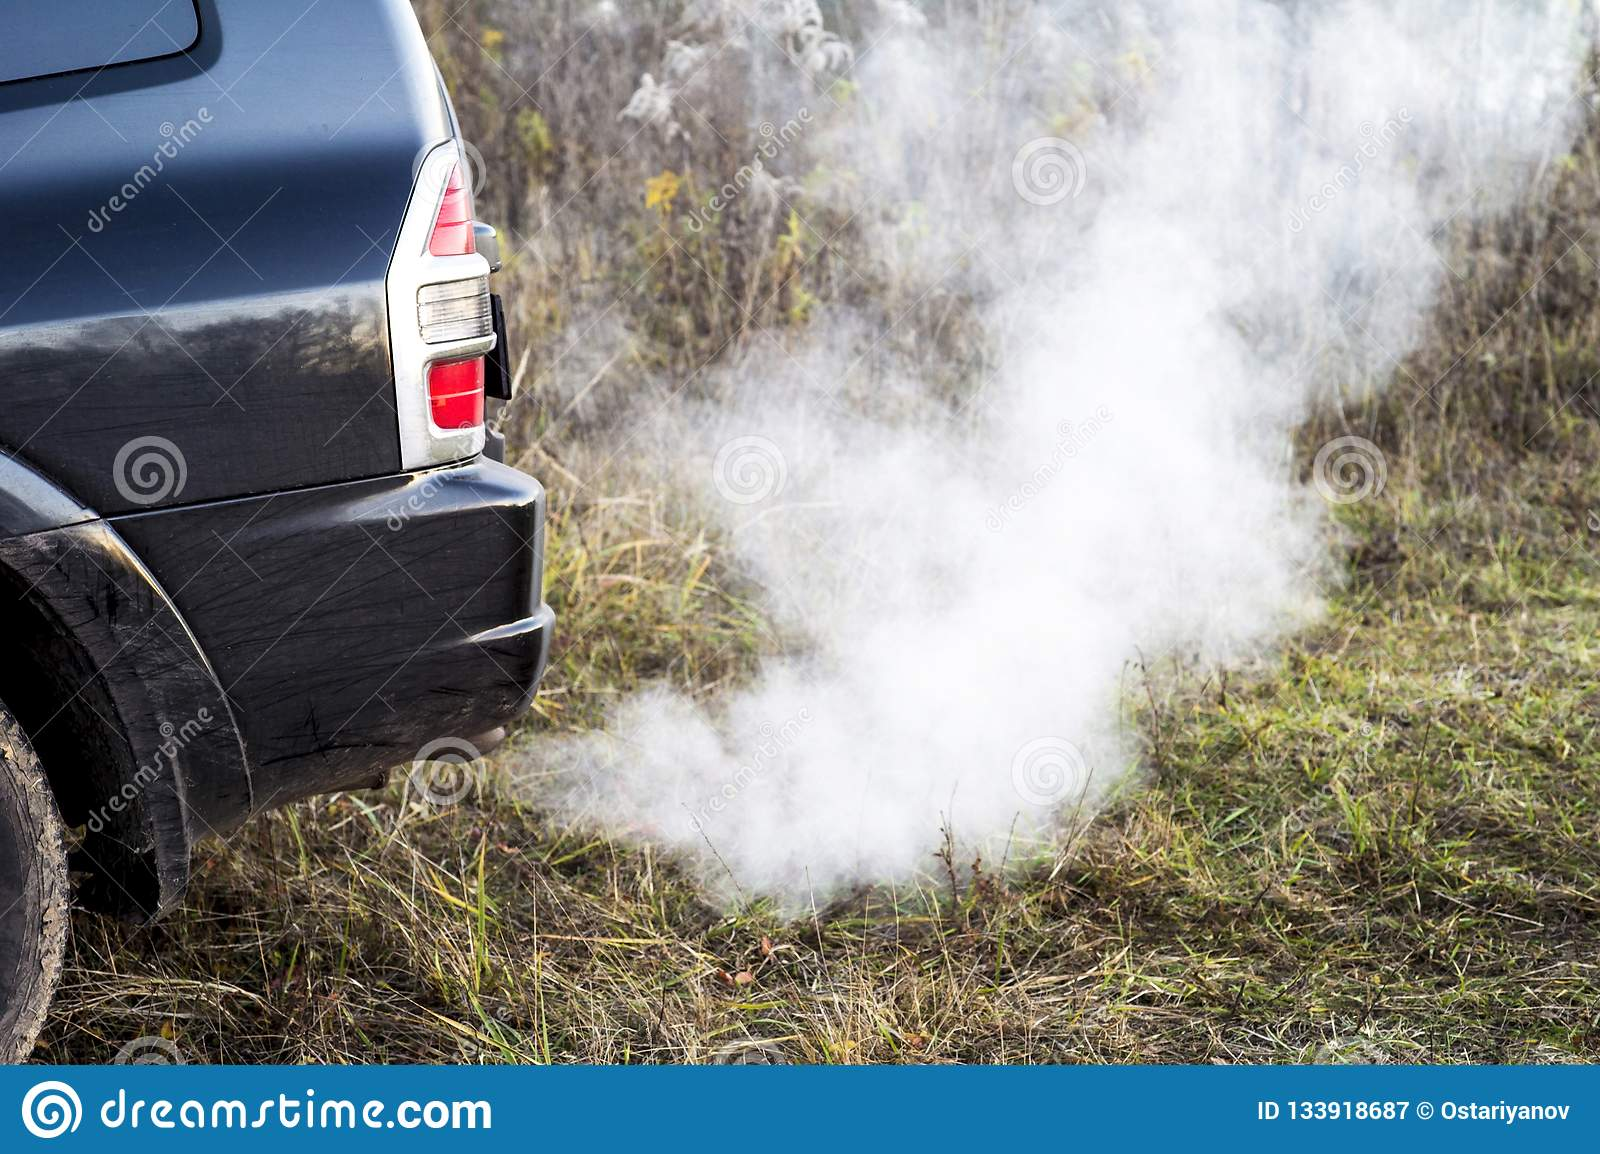 The back of the black car with the emission of smoke from the exhaust pipe on the background of nature